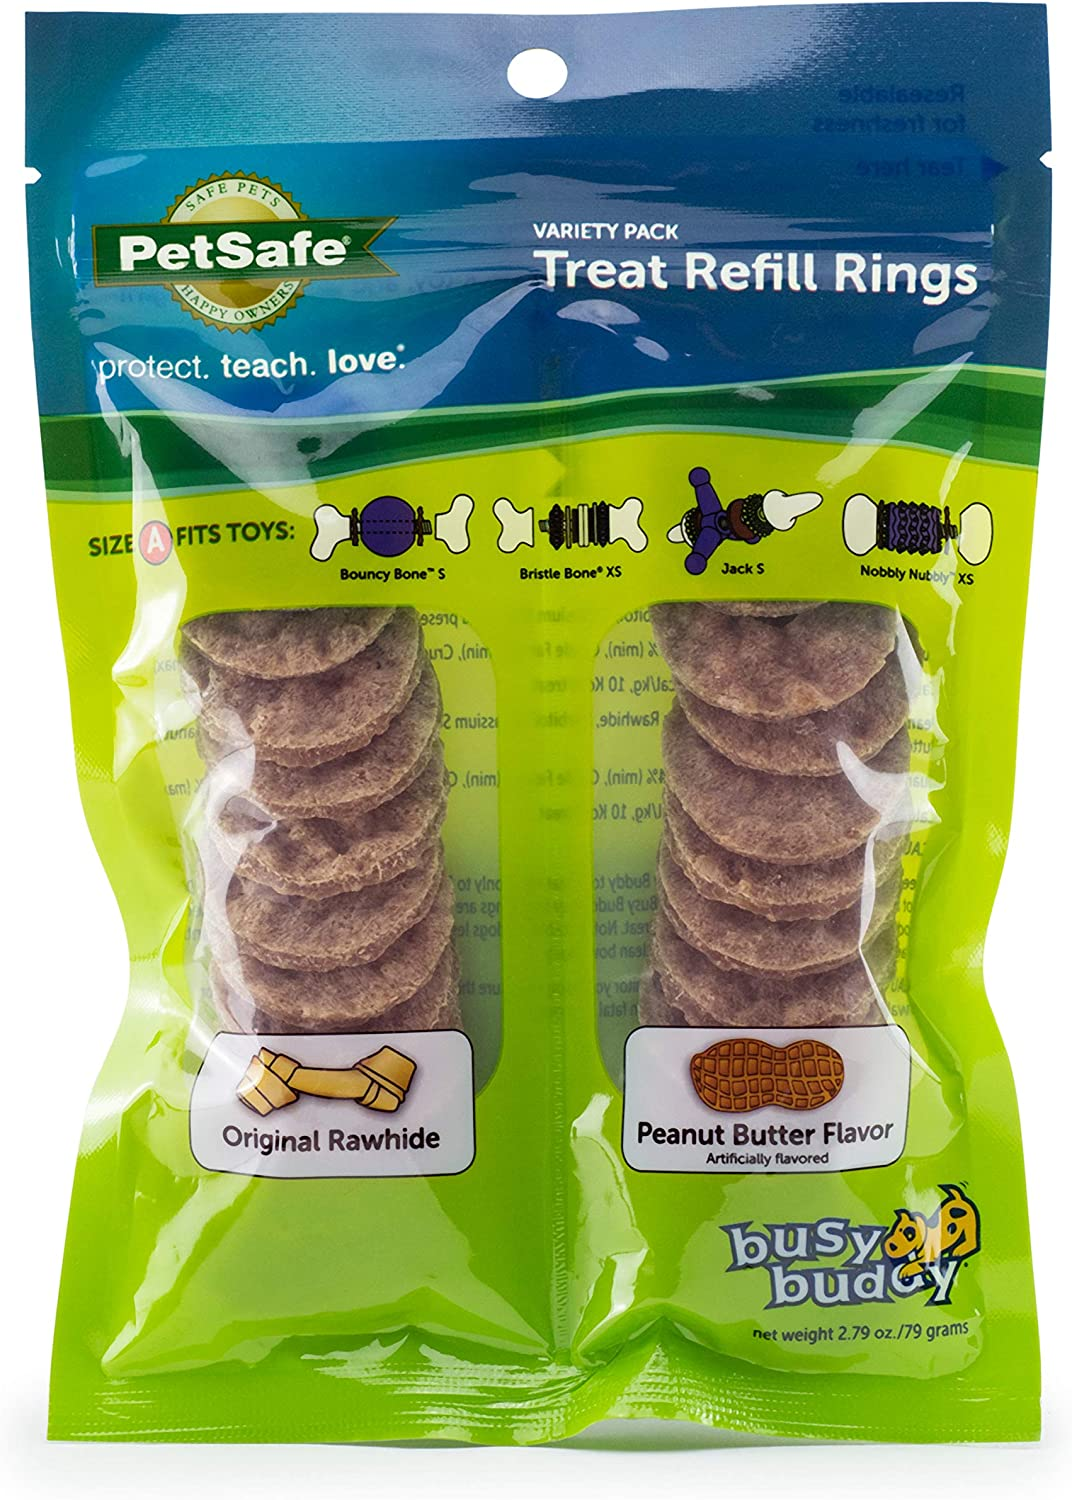 PetSafe Busy Buddy Rawhide Treat Ring Refills - Replacement Rings for PetSafe Treat Holding Toys - Size A, B, C - Multiple Flavors